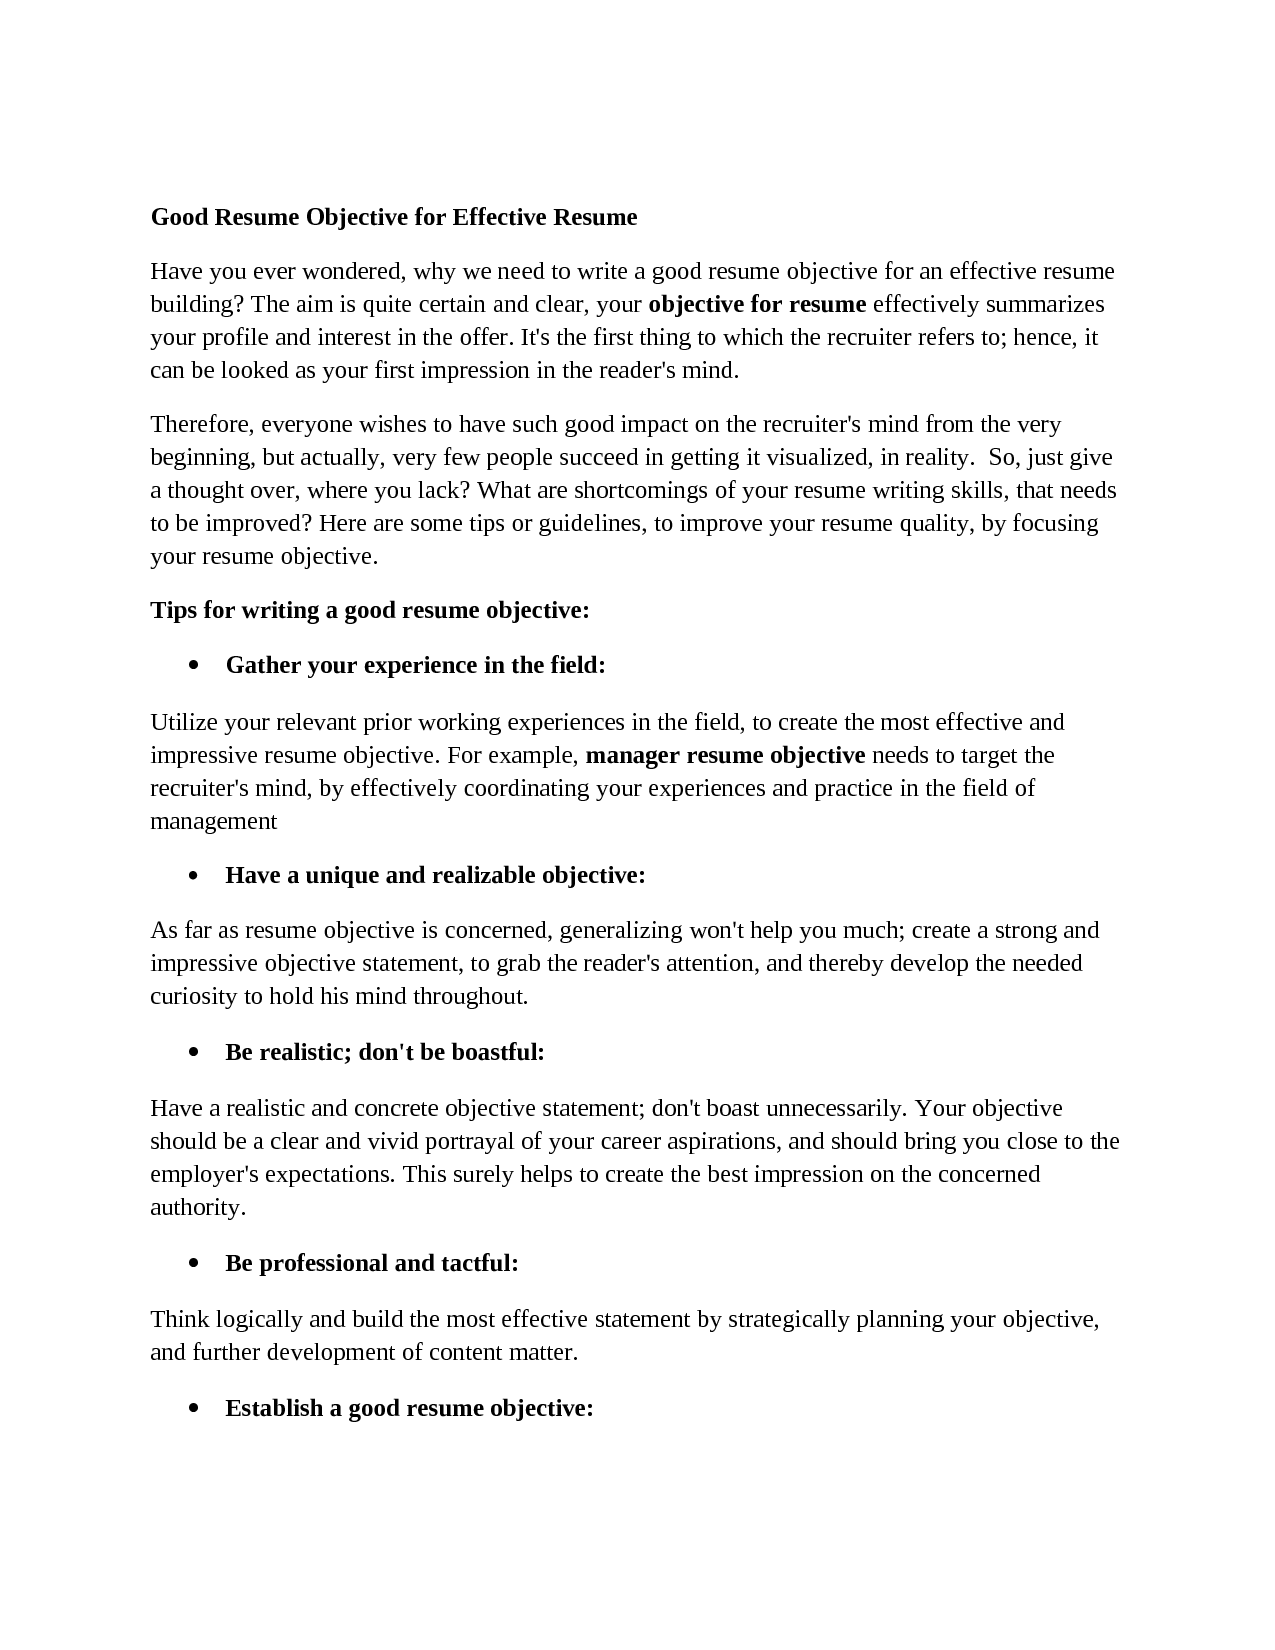 career objectives for resumes good resume objectives - Excellent Resume Objective Statements